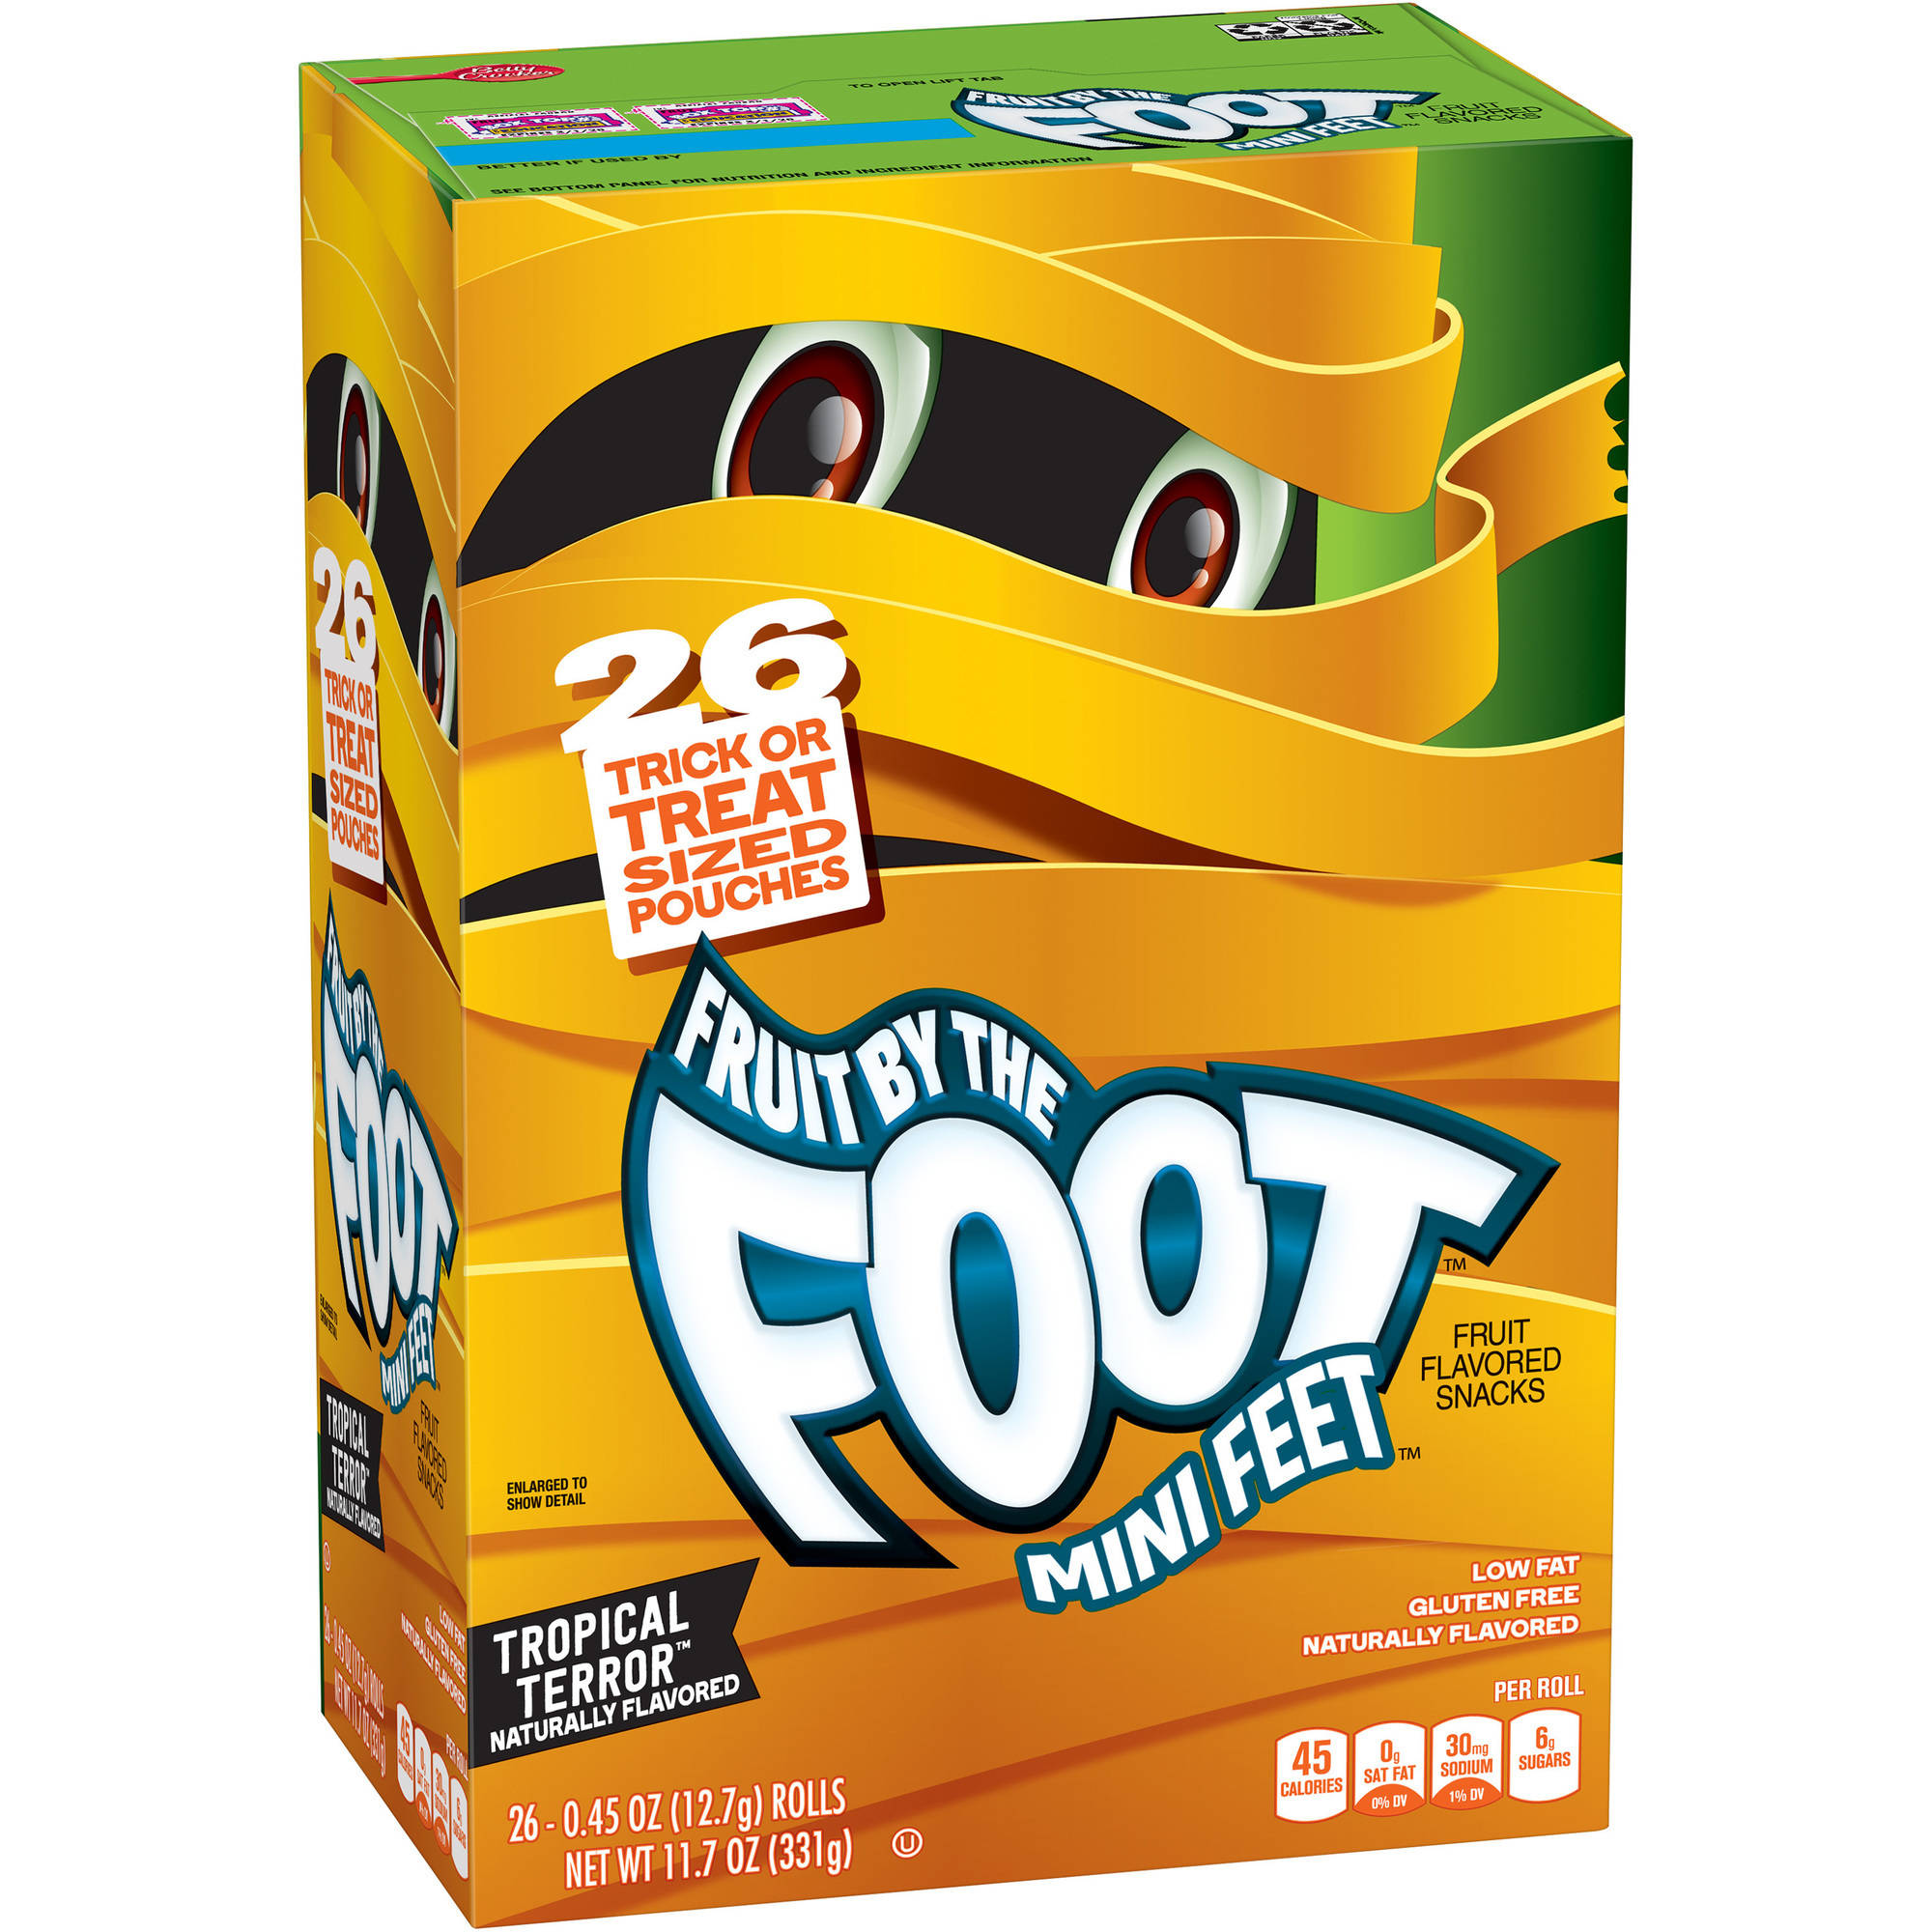 Betty Crocker��� Fruit by the Foot��� Mini Feet��� Tropical Terror��� Fruit Flavored Snacks 26-0.45 oz. Pouches